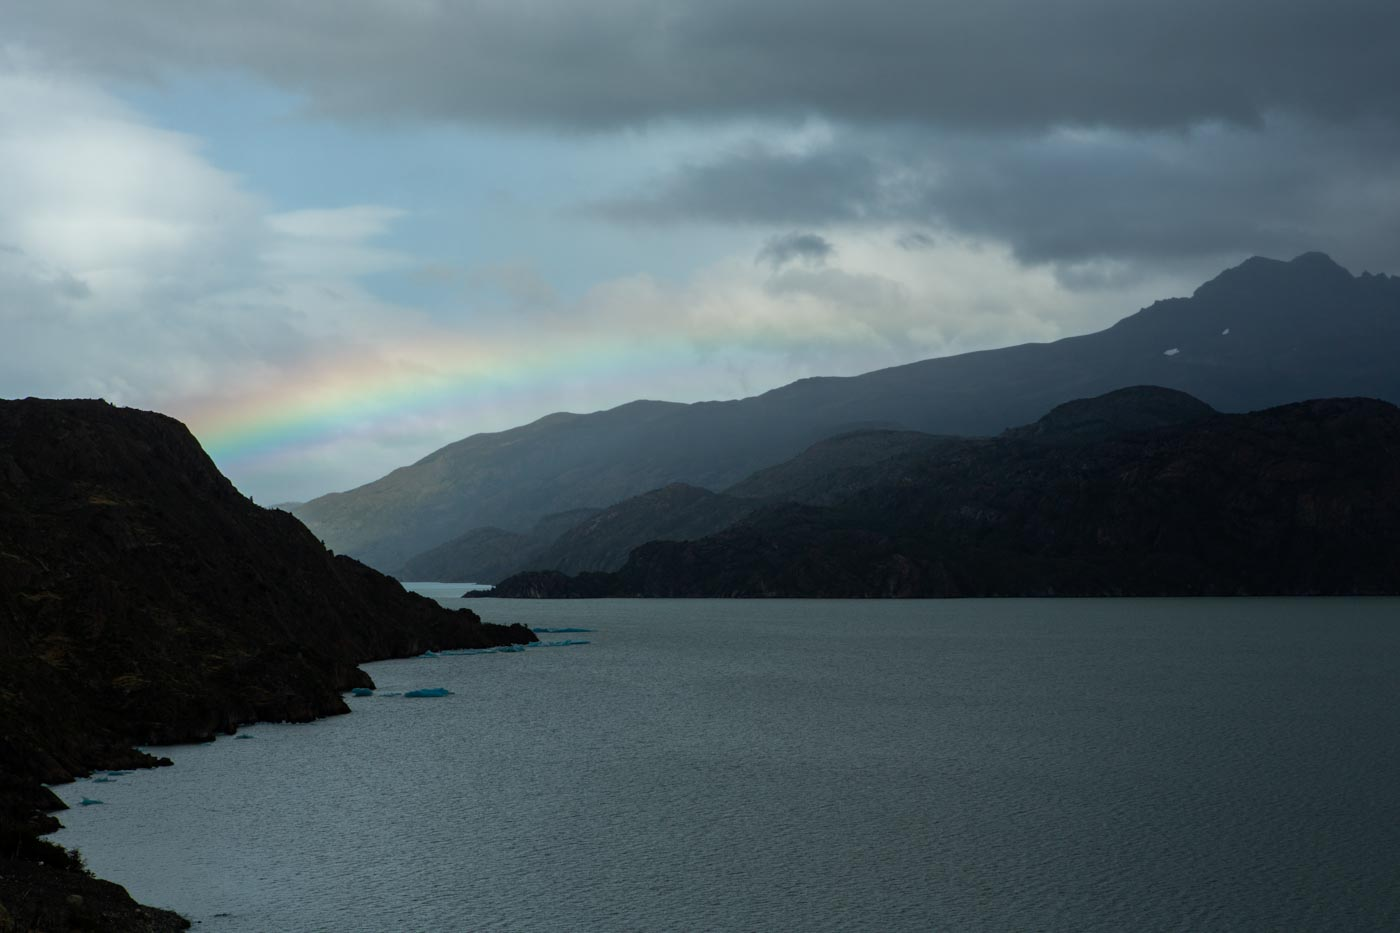 Rainbow near Grey Glacier, Torres del Paine, Chile.